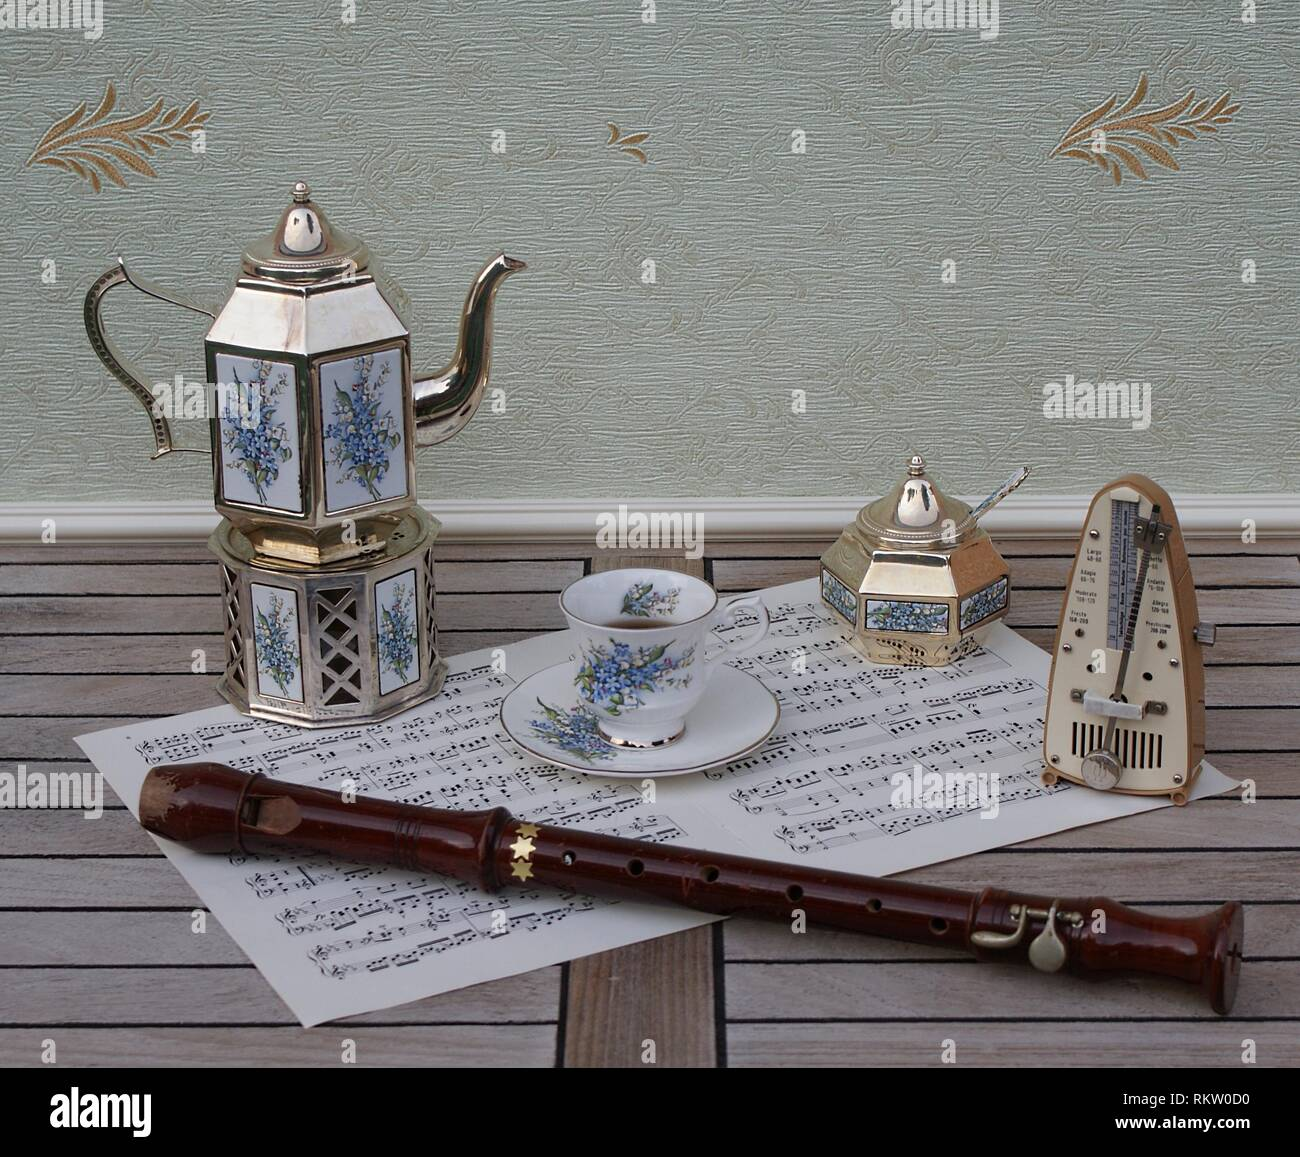 English teacup, saucer, silver-plated teapot on a silver stove, sugar bowl and sugar spoon, metronome for music and a block flute on a sheet of music - Stock Image